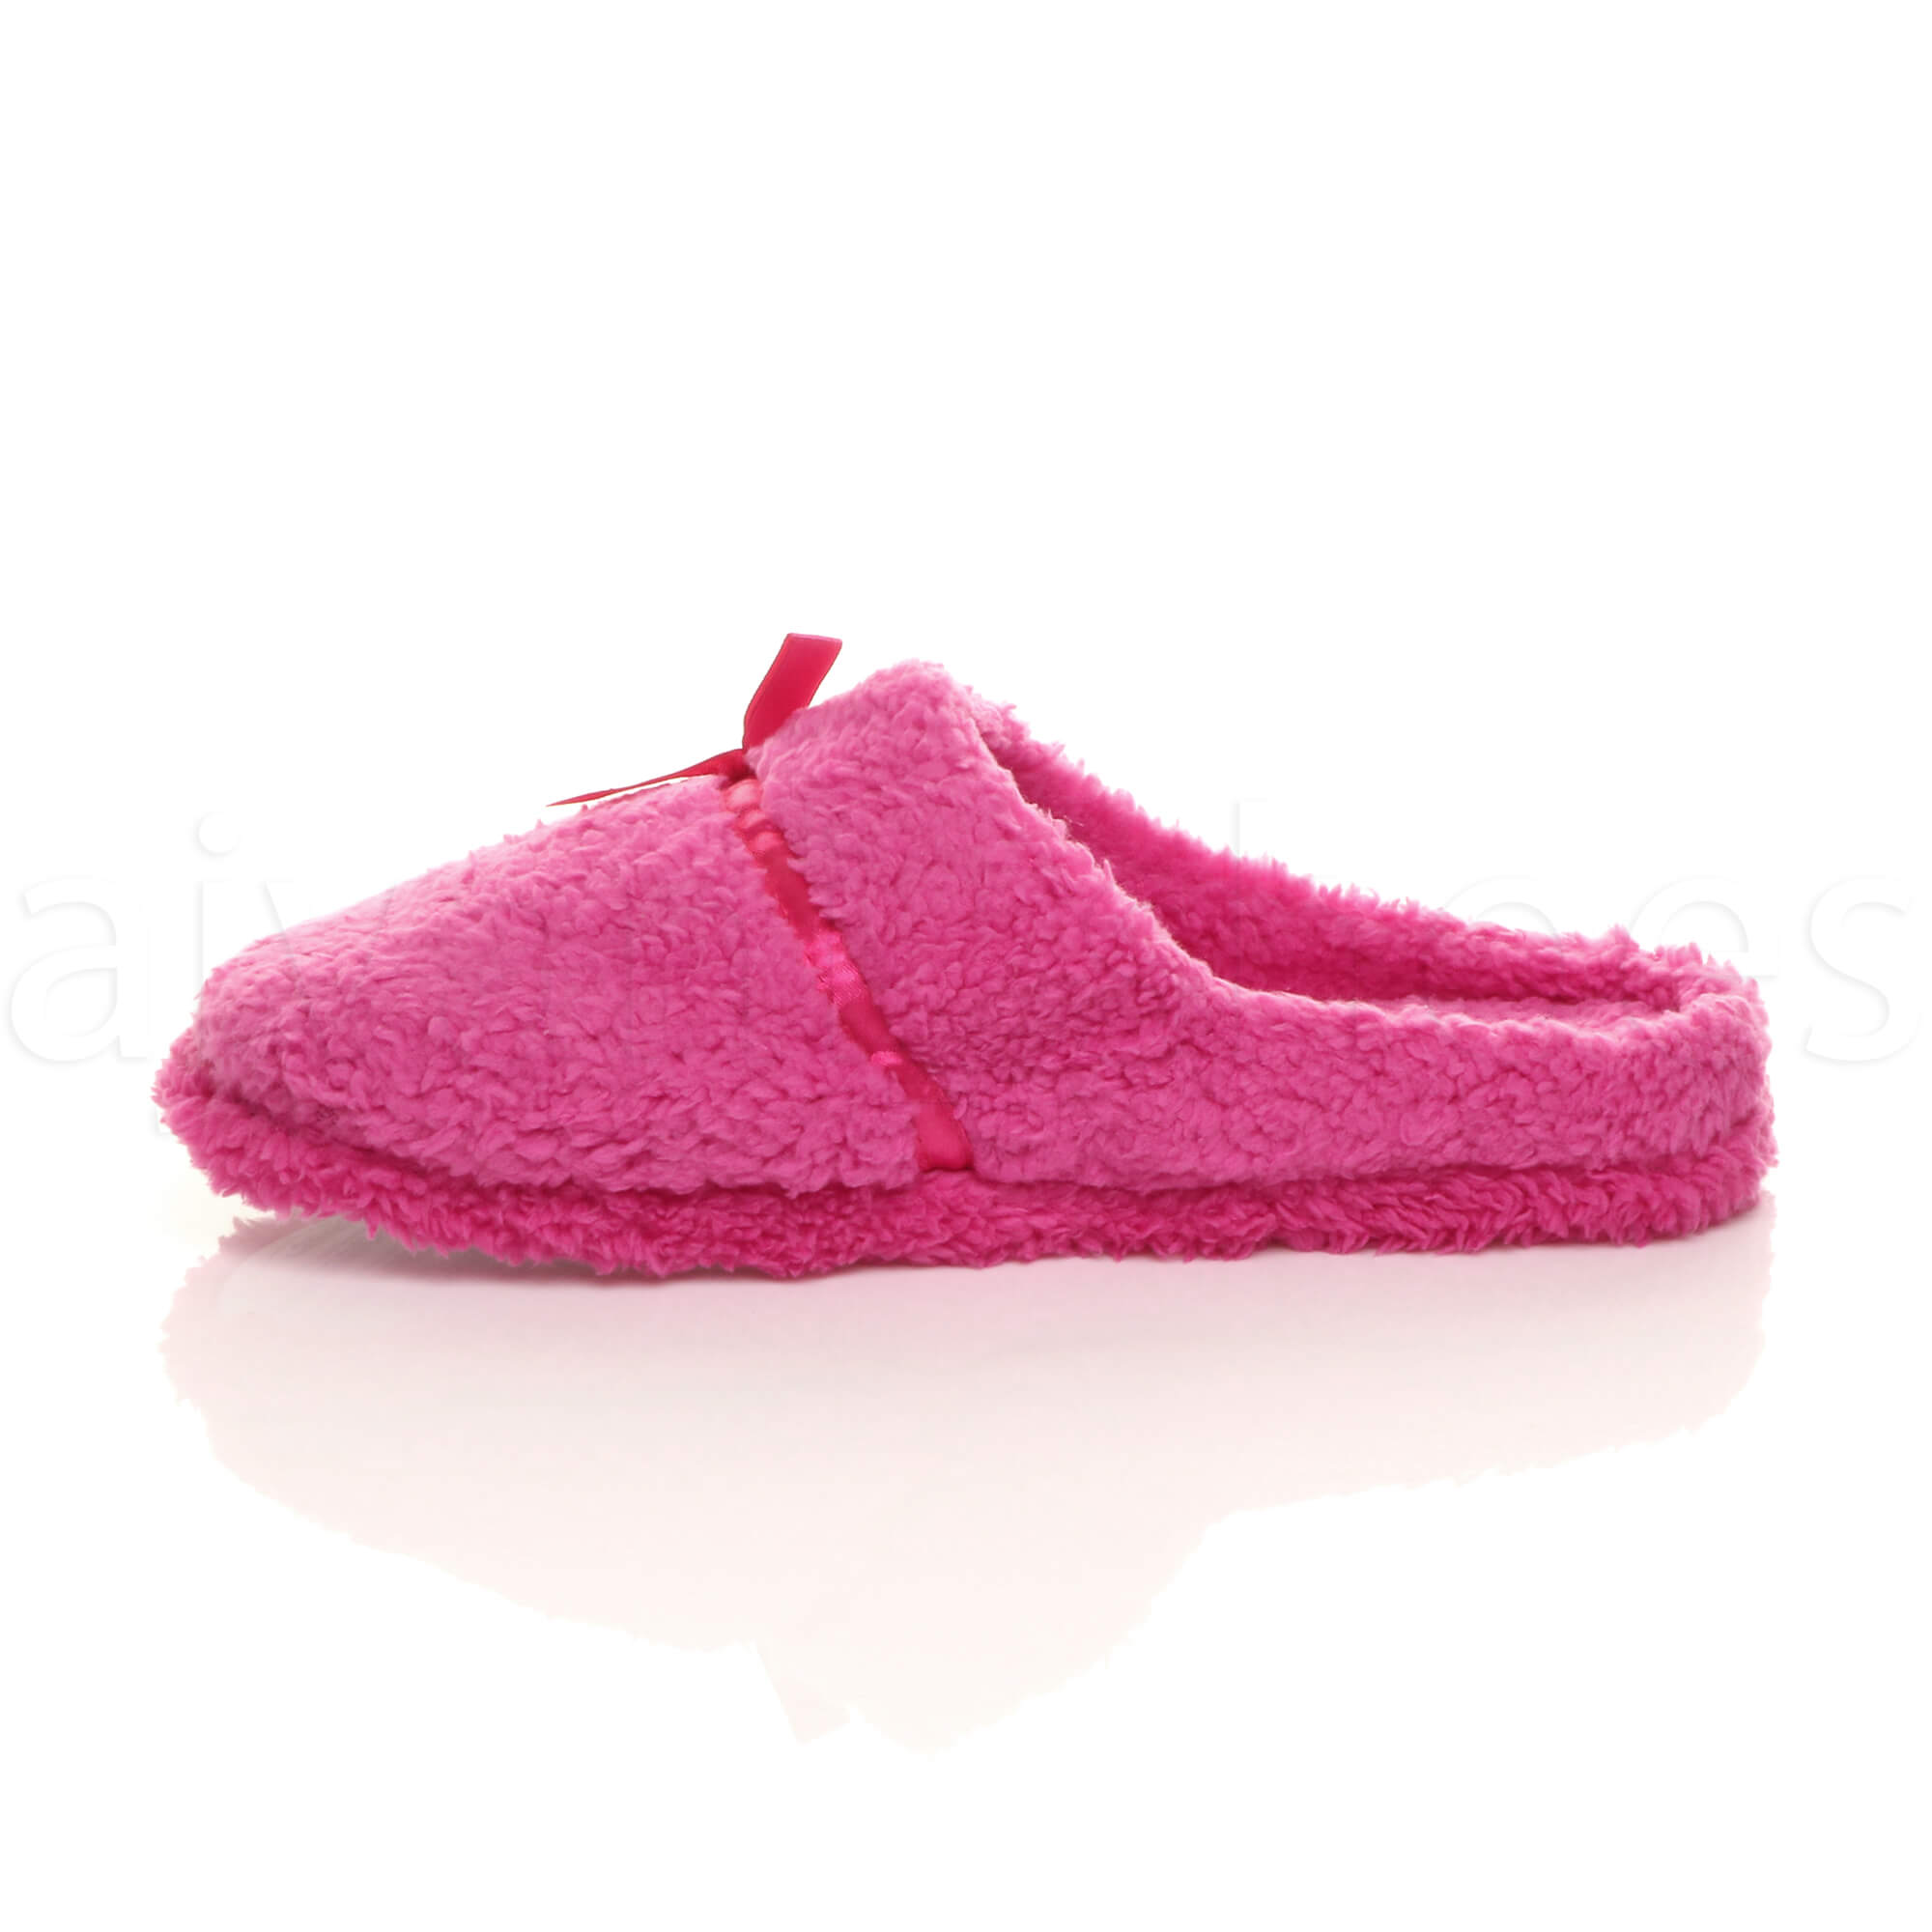 WOMENS-LADIES-BOW-HEART-GEM-WINTER-FLEECE-FUR-SLIPPERS-SLIP-ON-MULES-SIZE